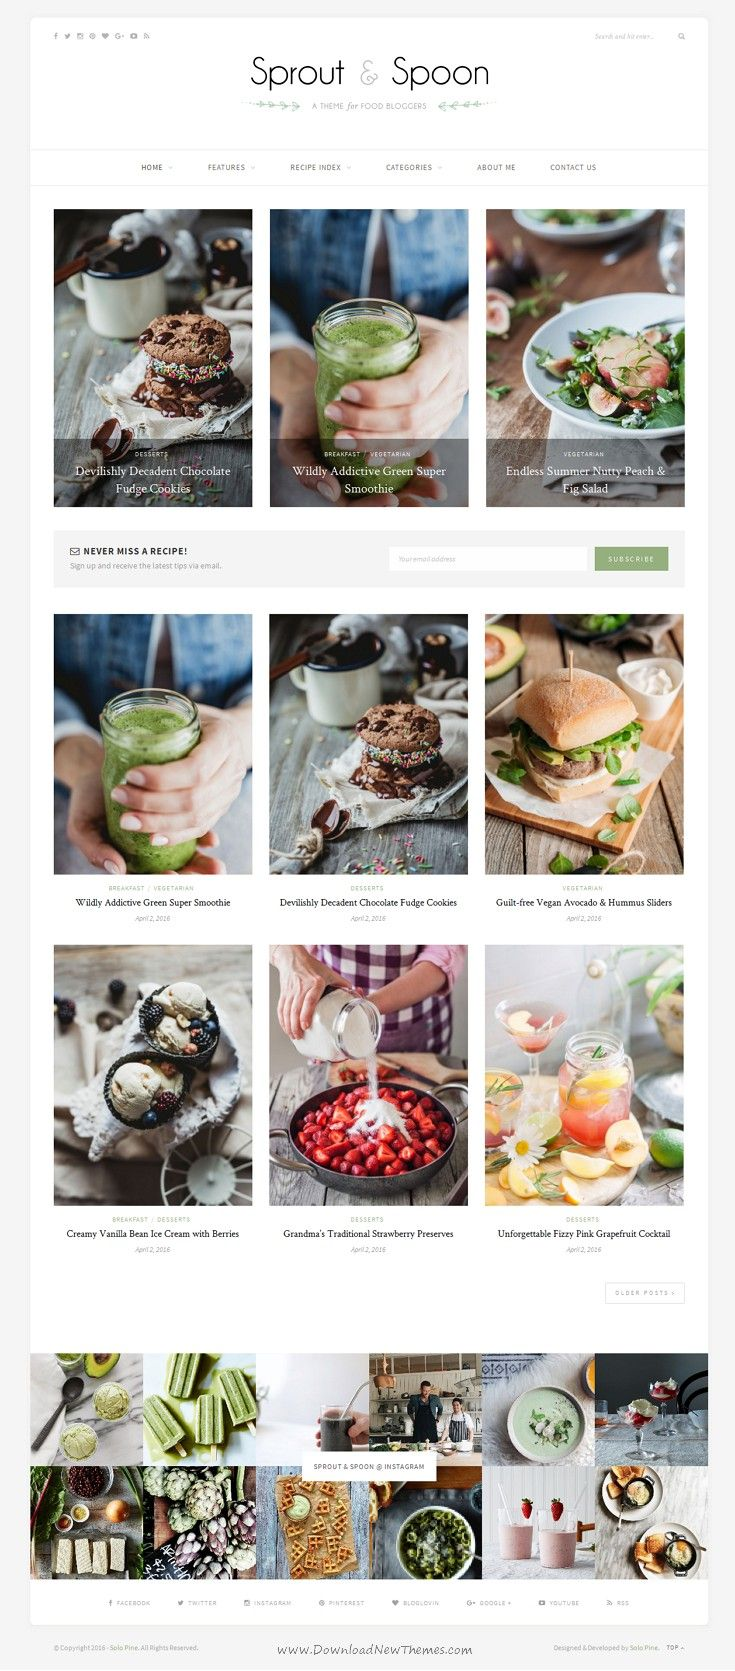 Sprout & Spoon beautiful WordPress Theme for #Food Bloggers #blogging #recipes Download Now!